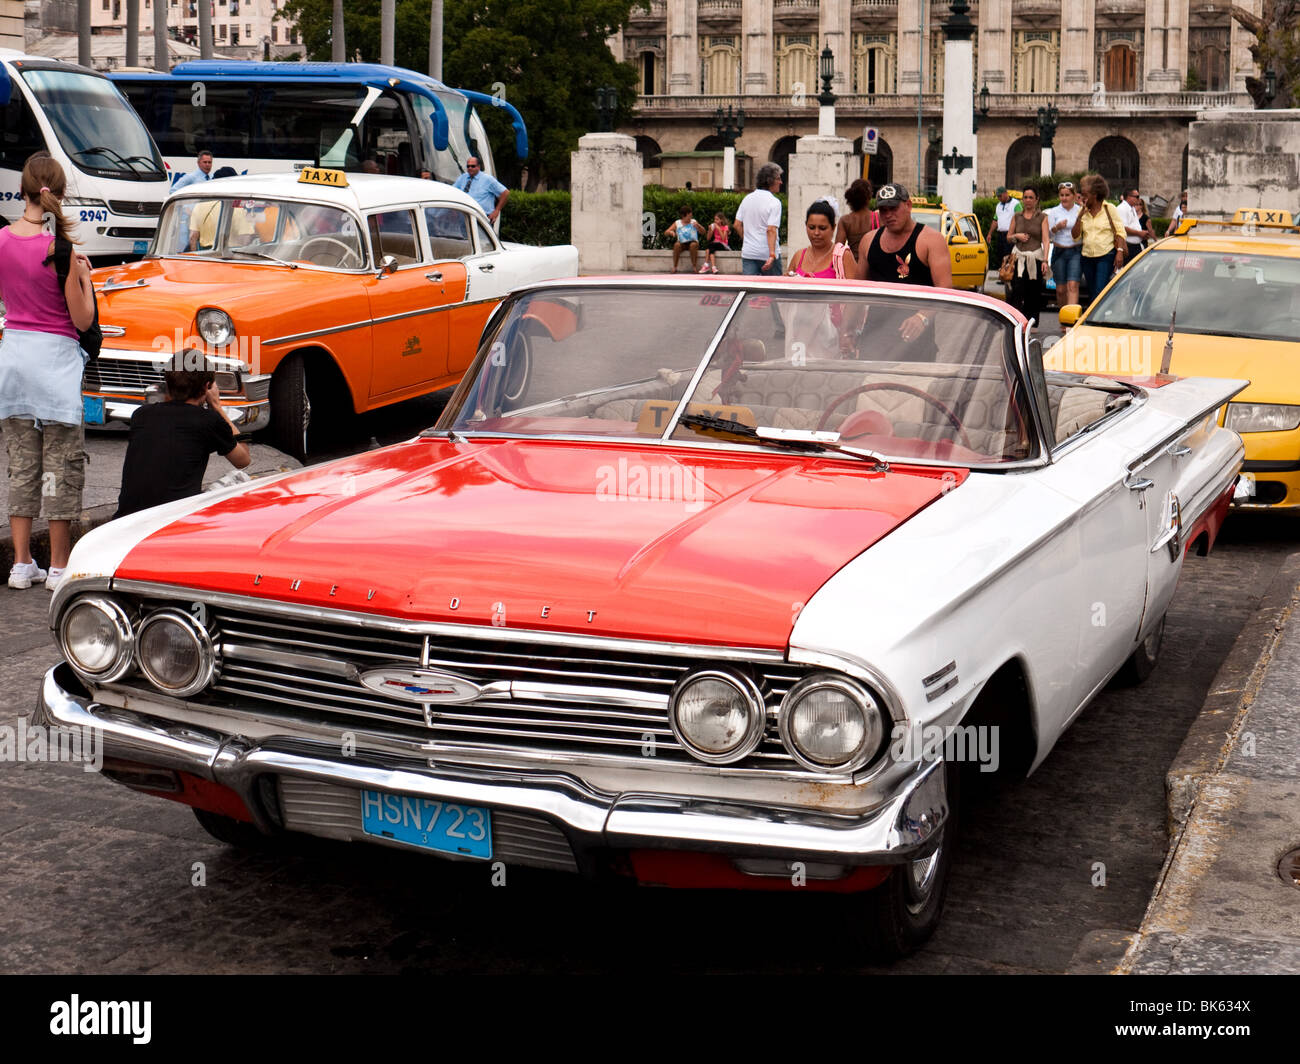 Chevrolet Convertible 1950s American Car in Havana Old City ...